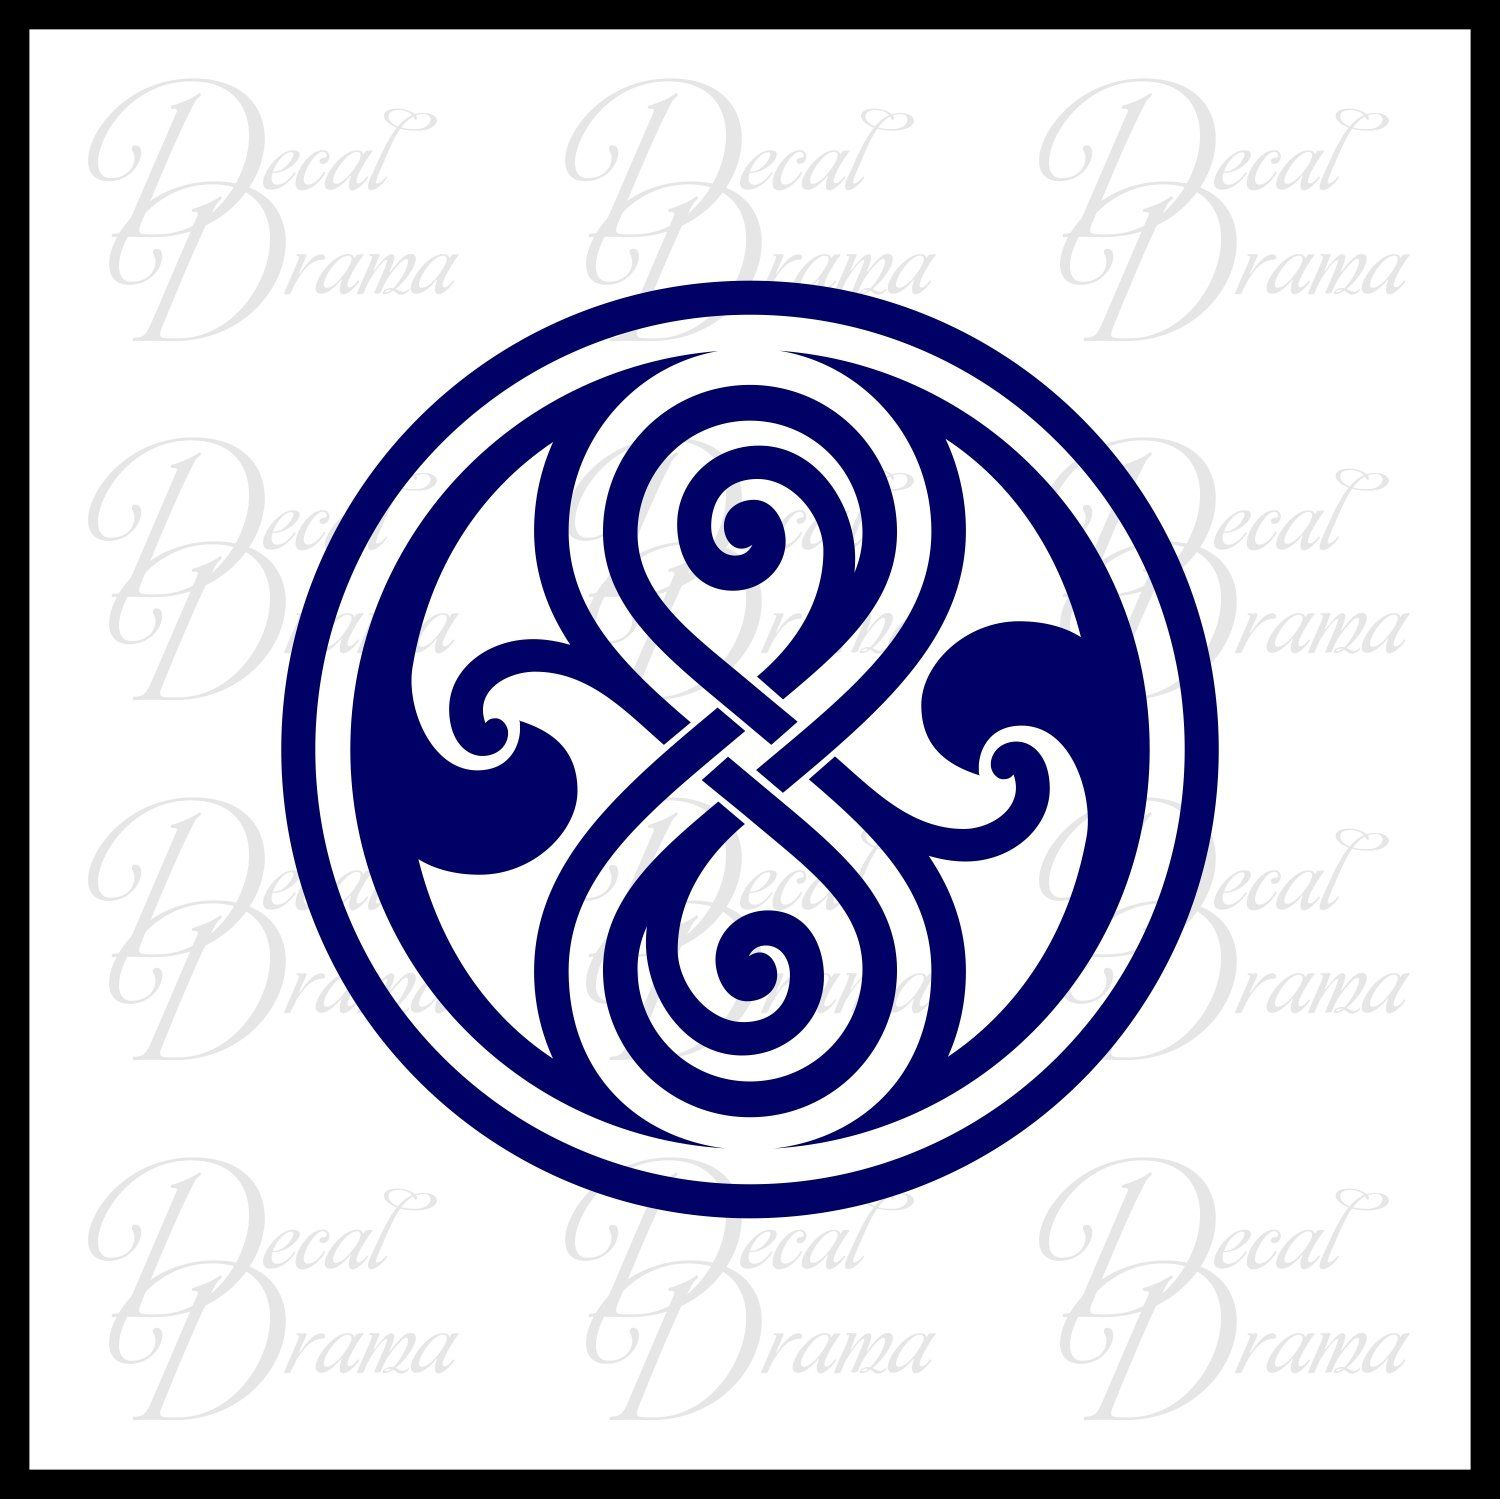 Gallifrey seal of rassilon large vinyl car decal this seal explore these ideas and more buycottarizona